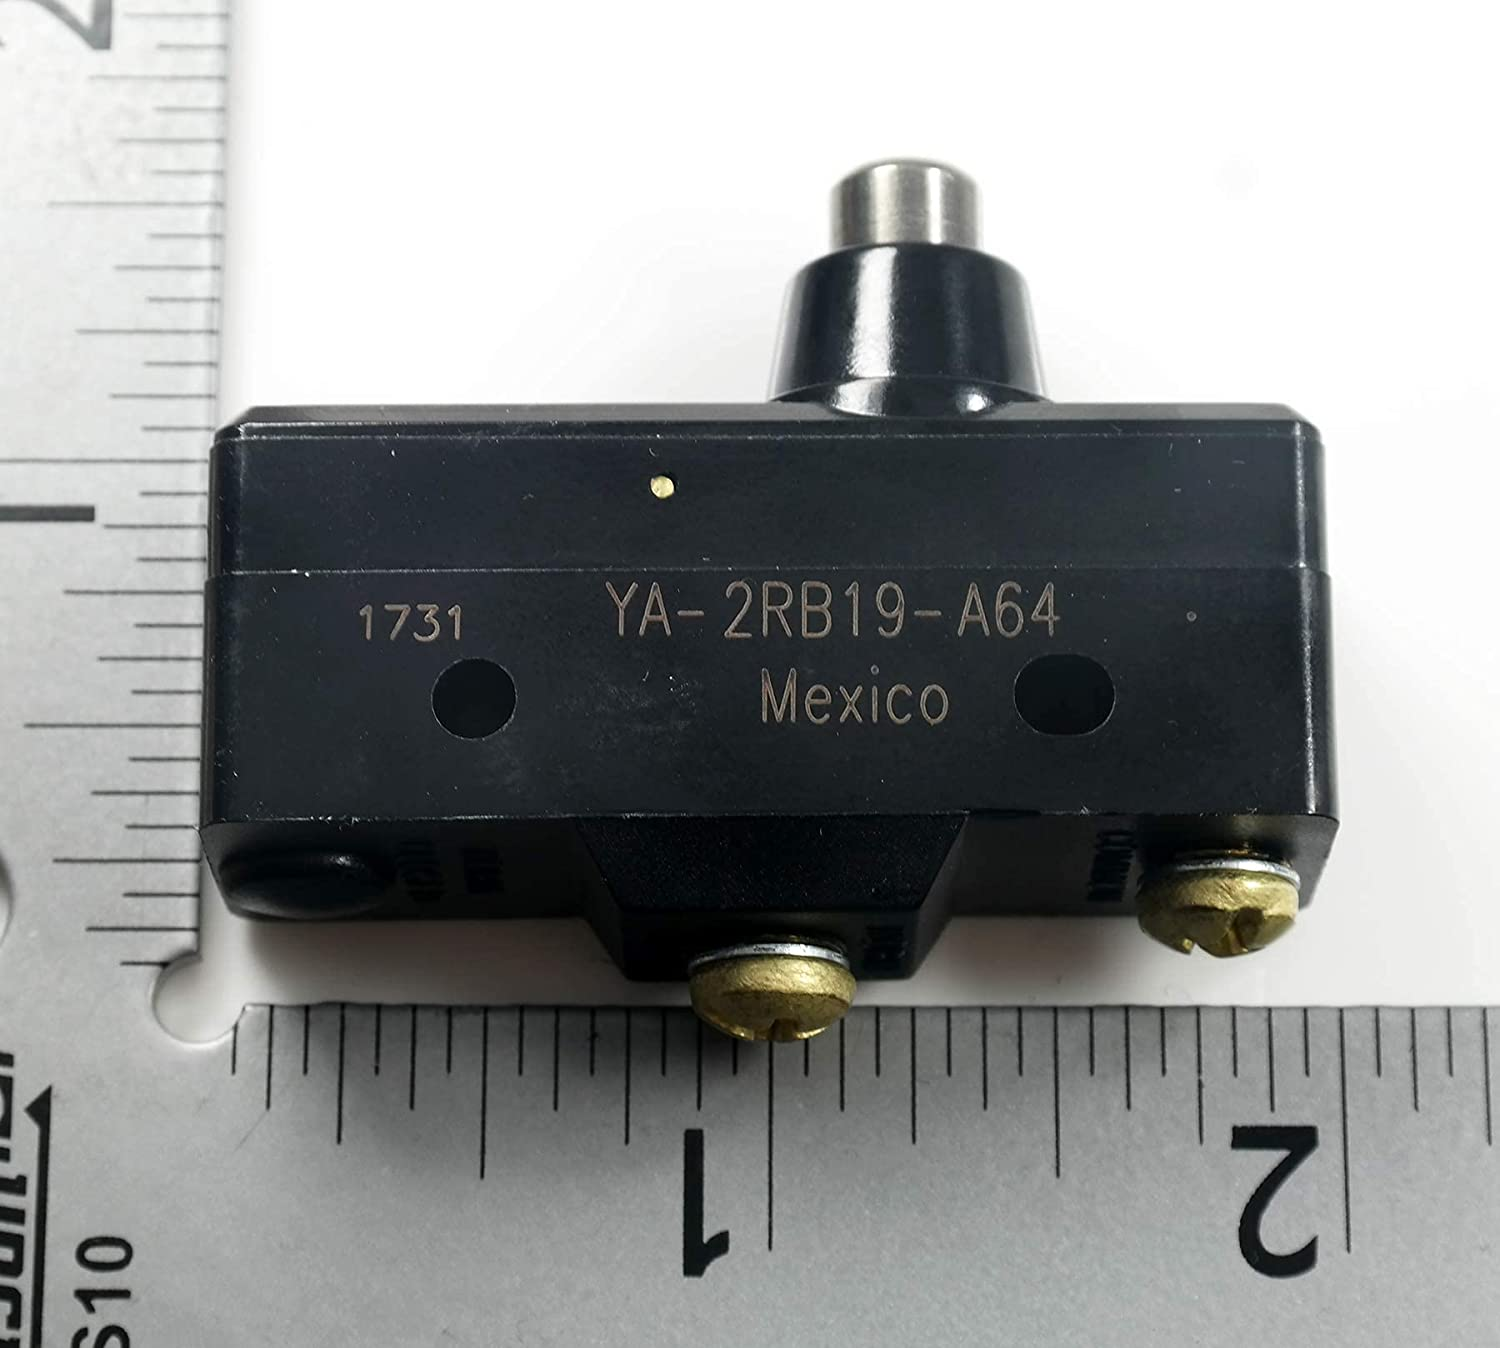 YA-2RB19-A64 - Microswitch Standard Plunger SPST-N Industry No. Be super welcome 1 Overtravel